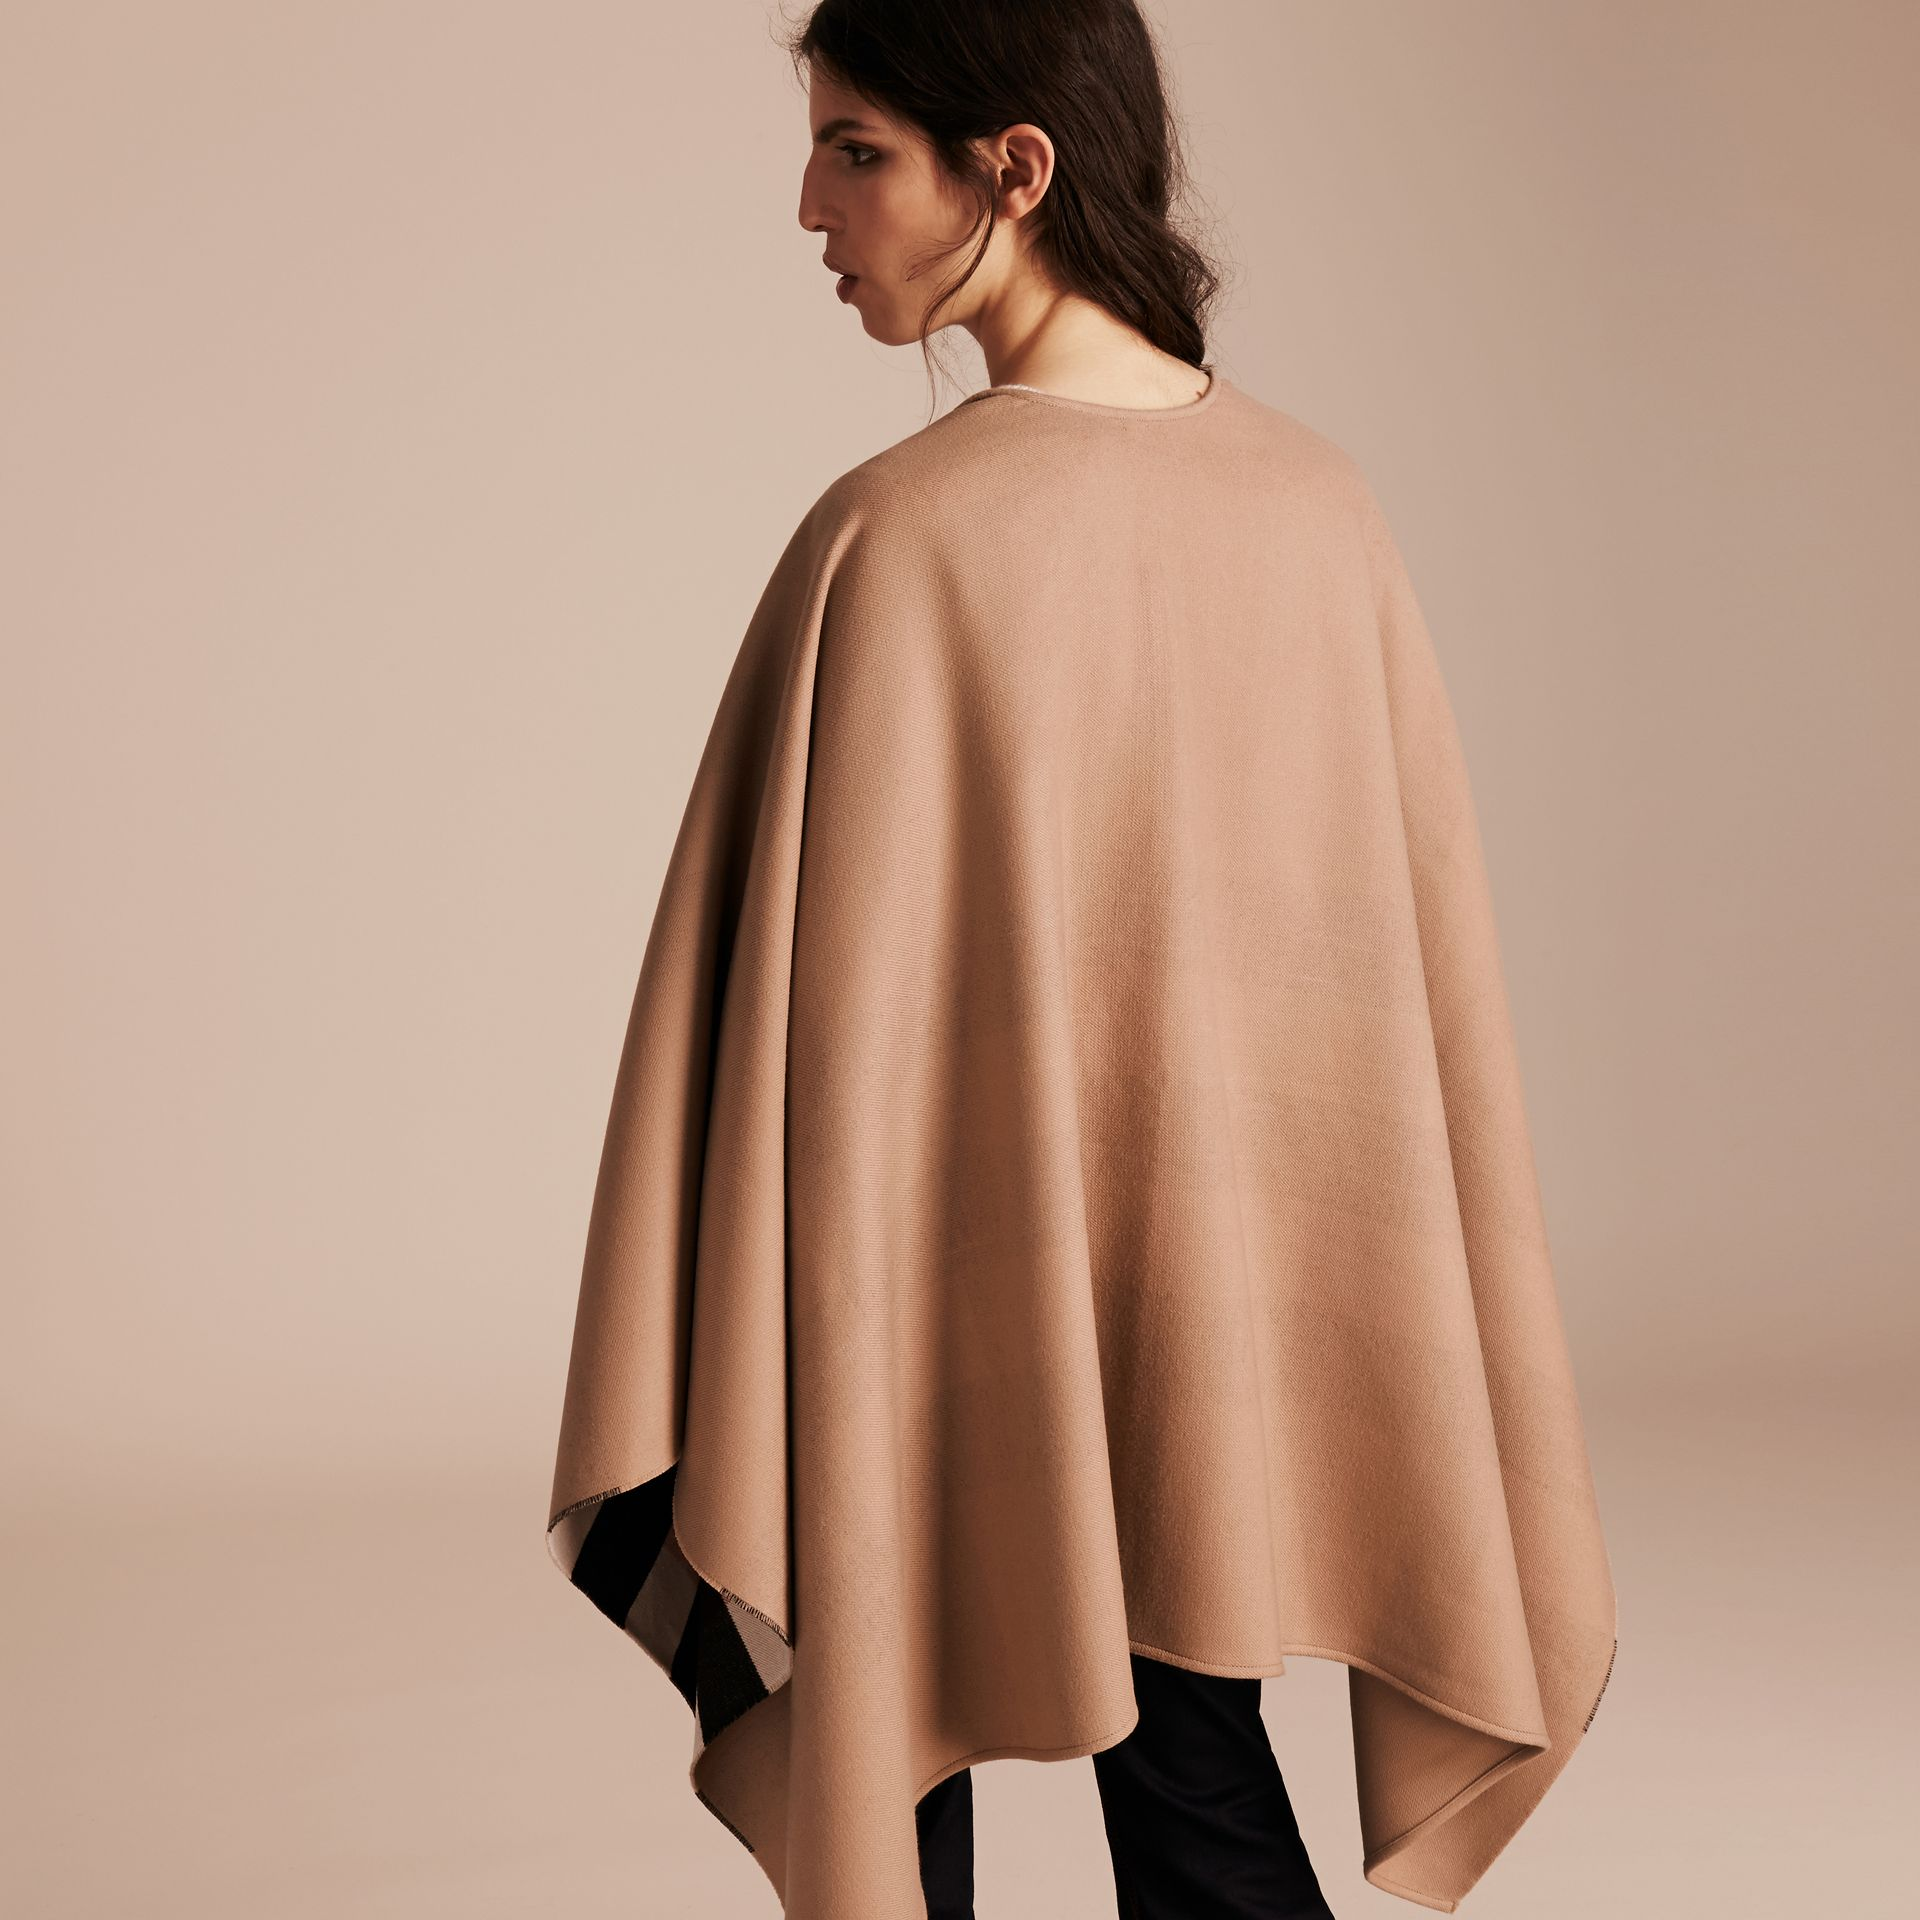 Reversible Check Merino Wool Poncho in Camel - Women | Burberry - gallery image 6